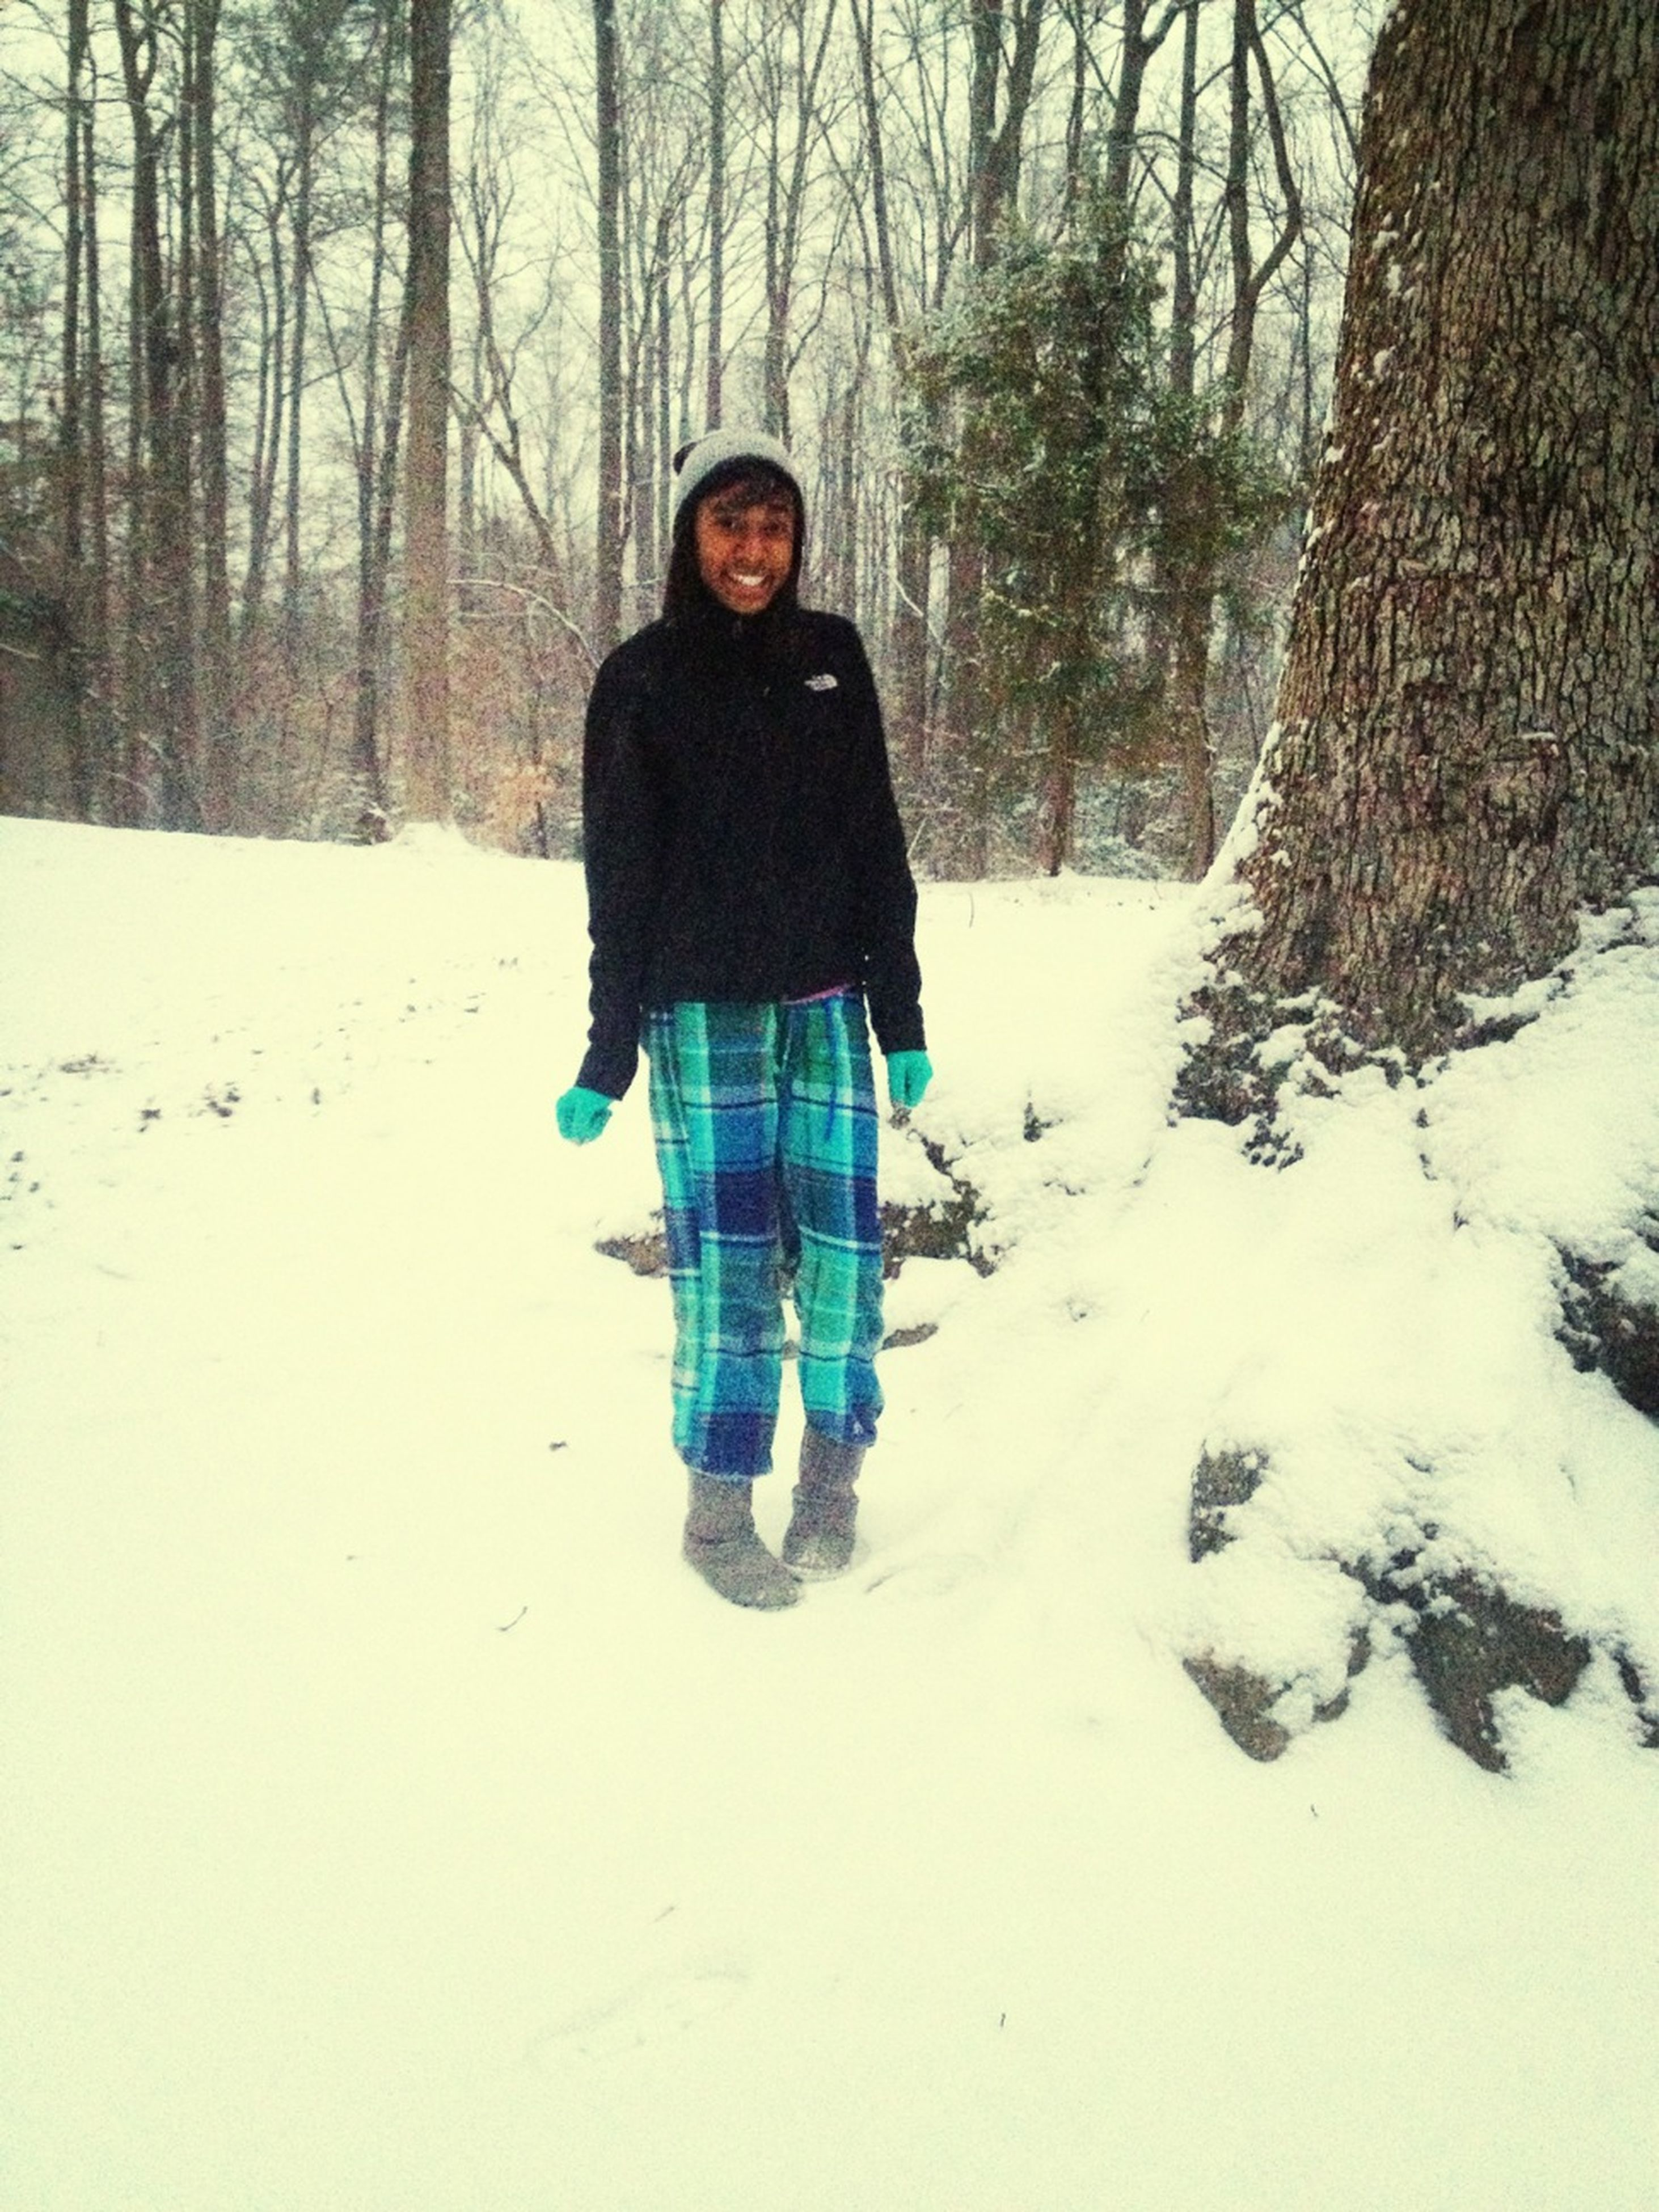 snow, winter, cold temperature, season, tree, lifestyles, warm clothing, weather, leisure activity, covering, full length, front view, white color, forest, nature, tree trunk, covered, tranquility